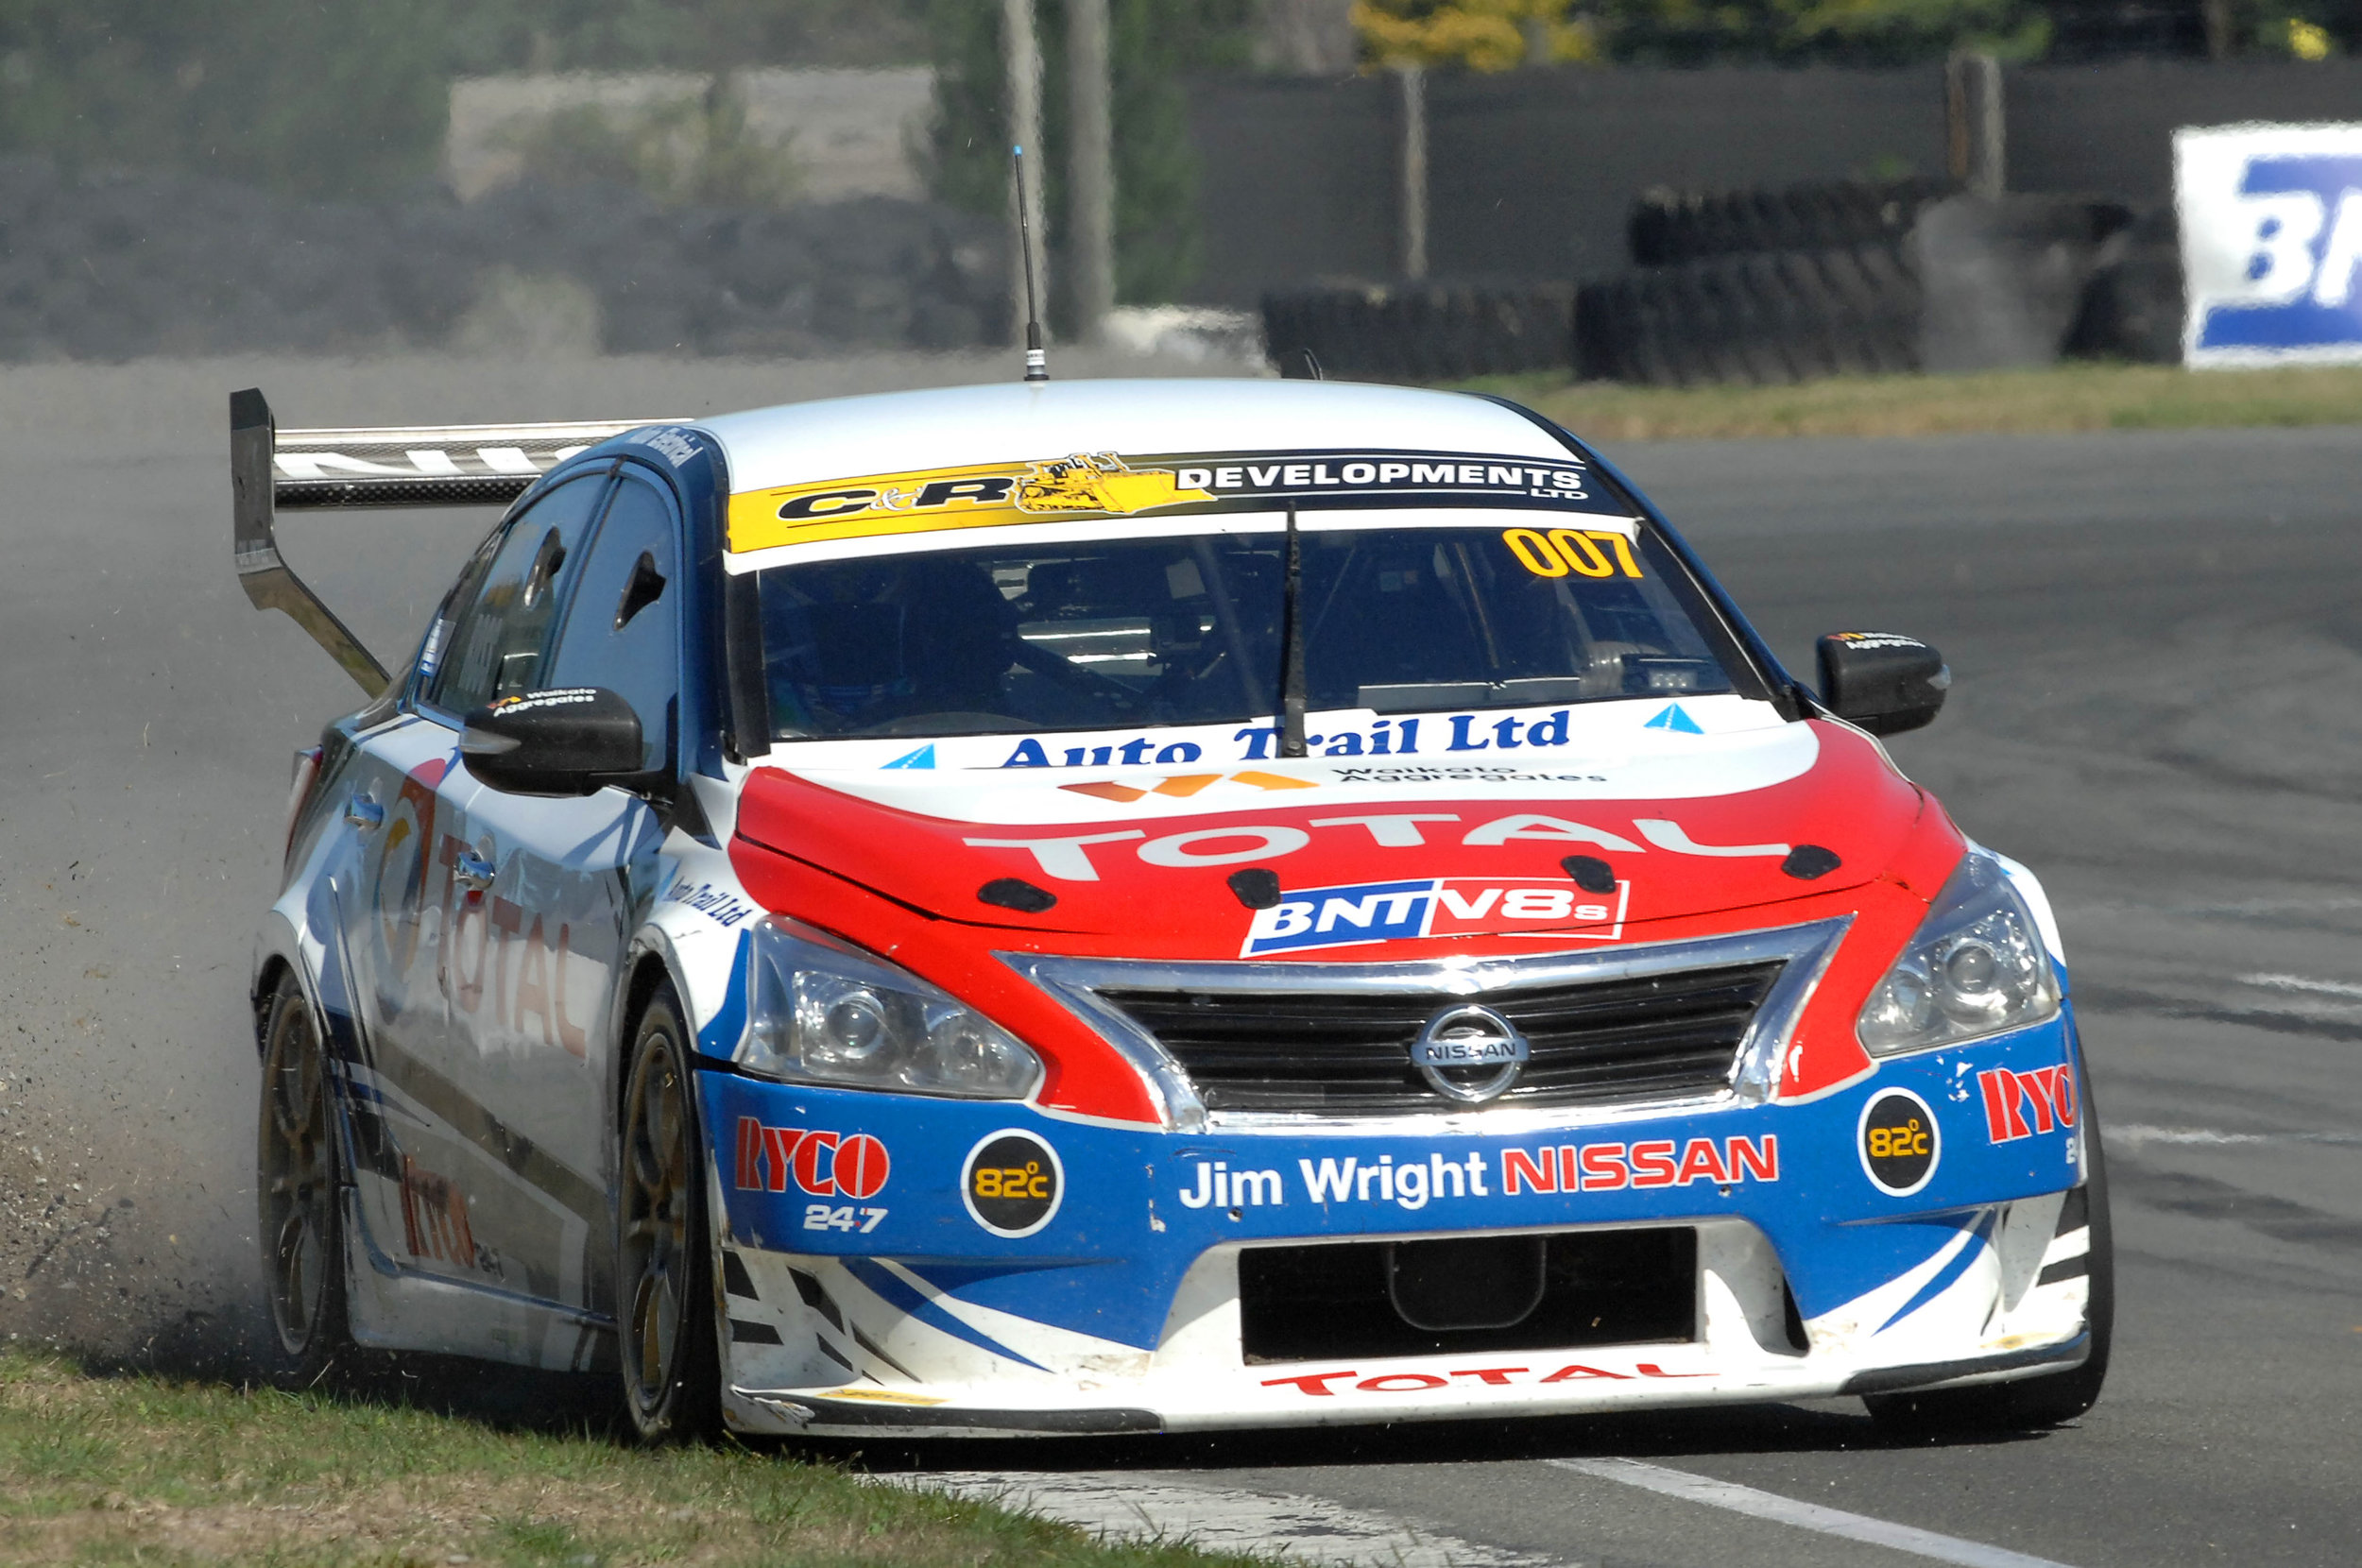 Nick Ross has finished second overall at Ruapuna in his Total Lubricants Nissan Altima.  Photo credit Euan Cameron.